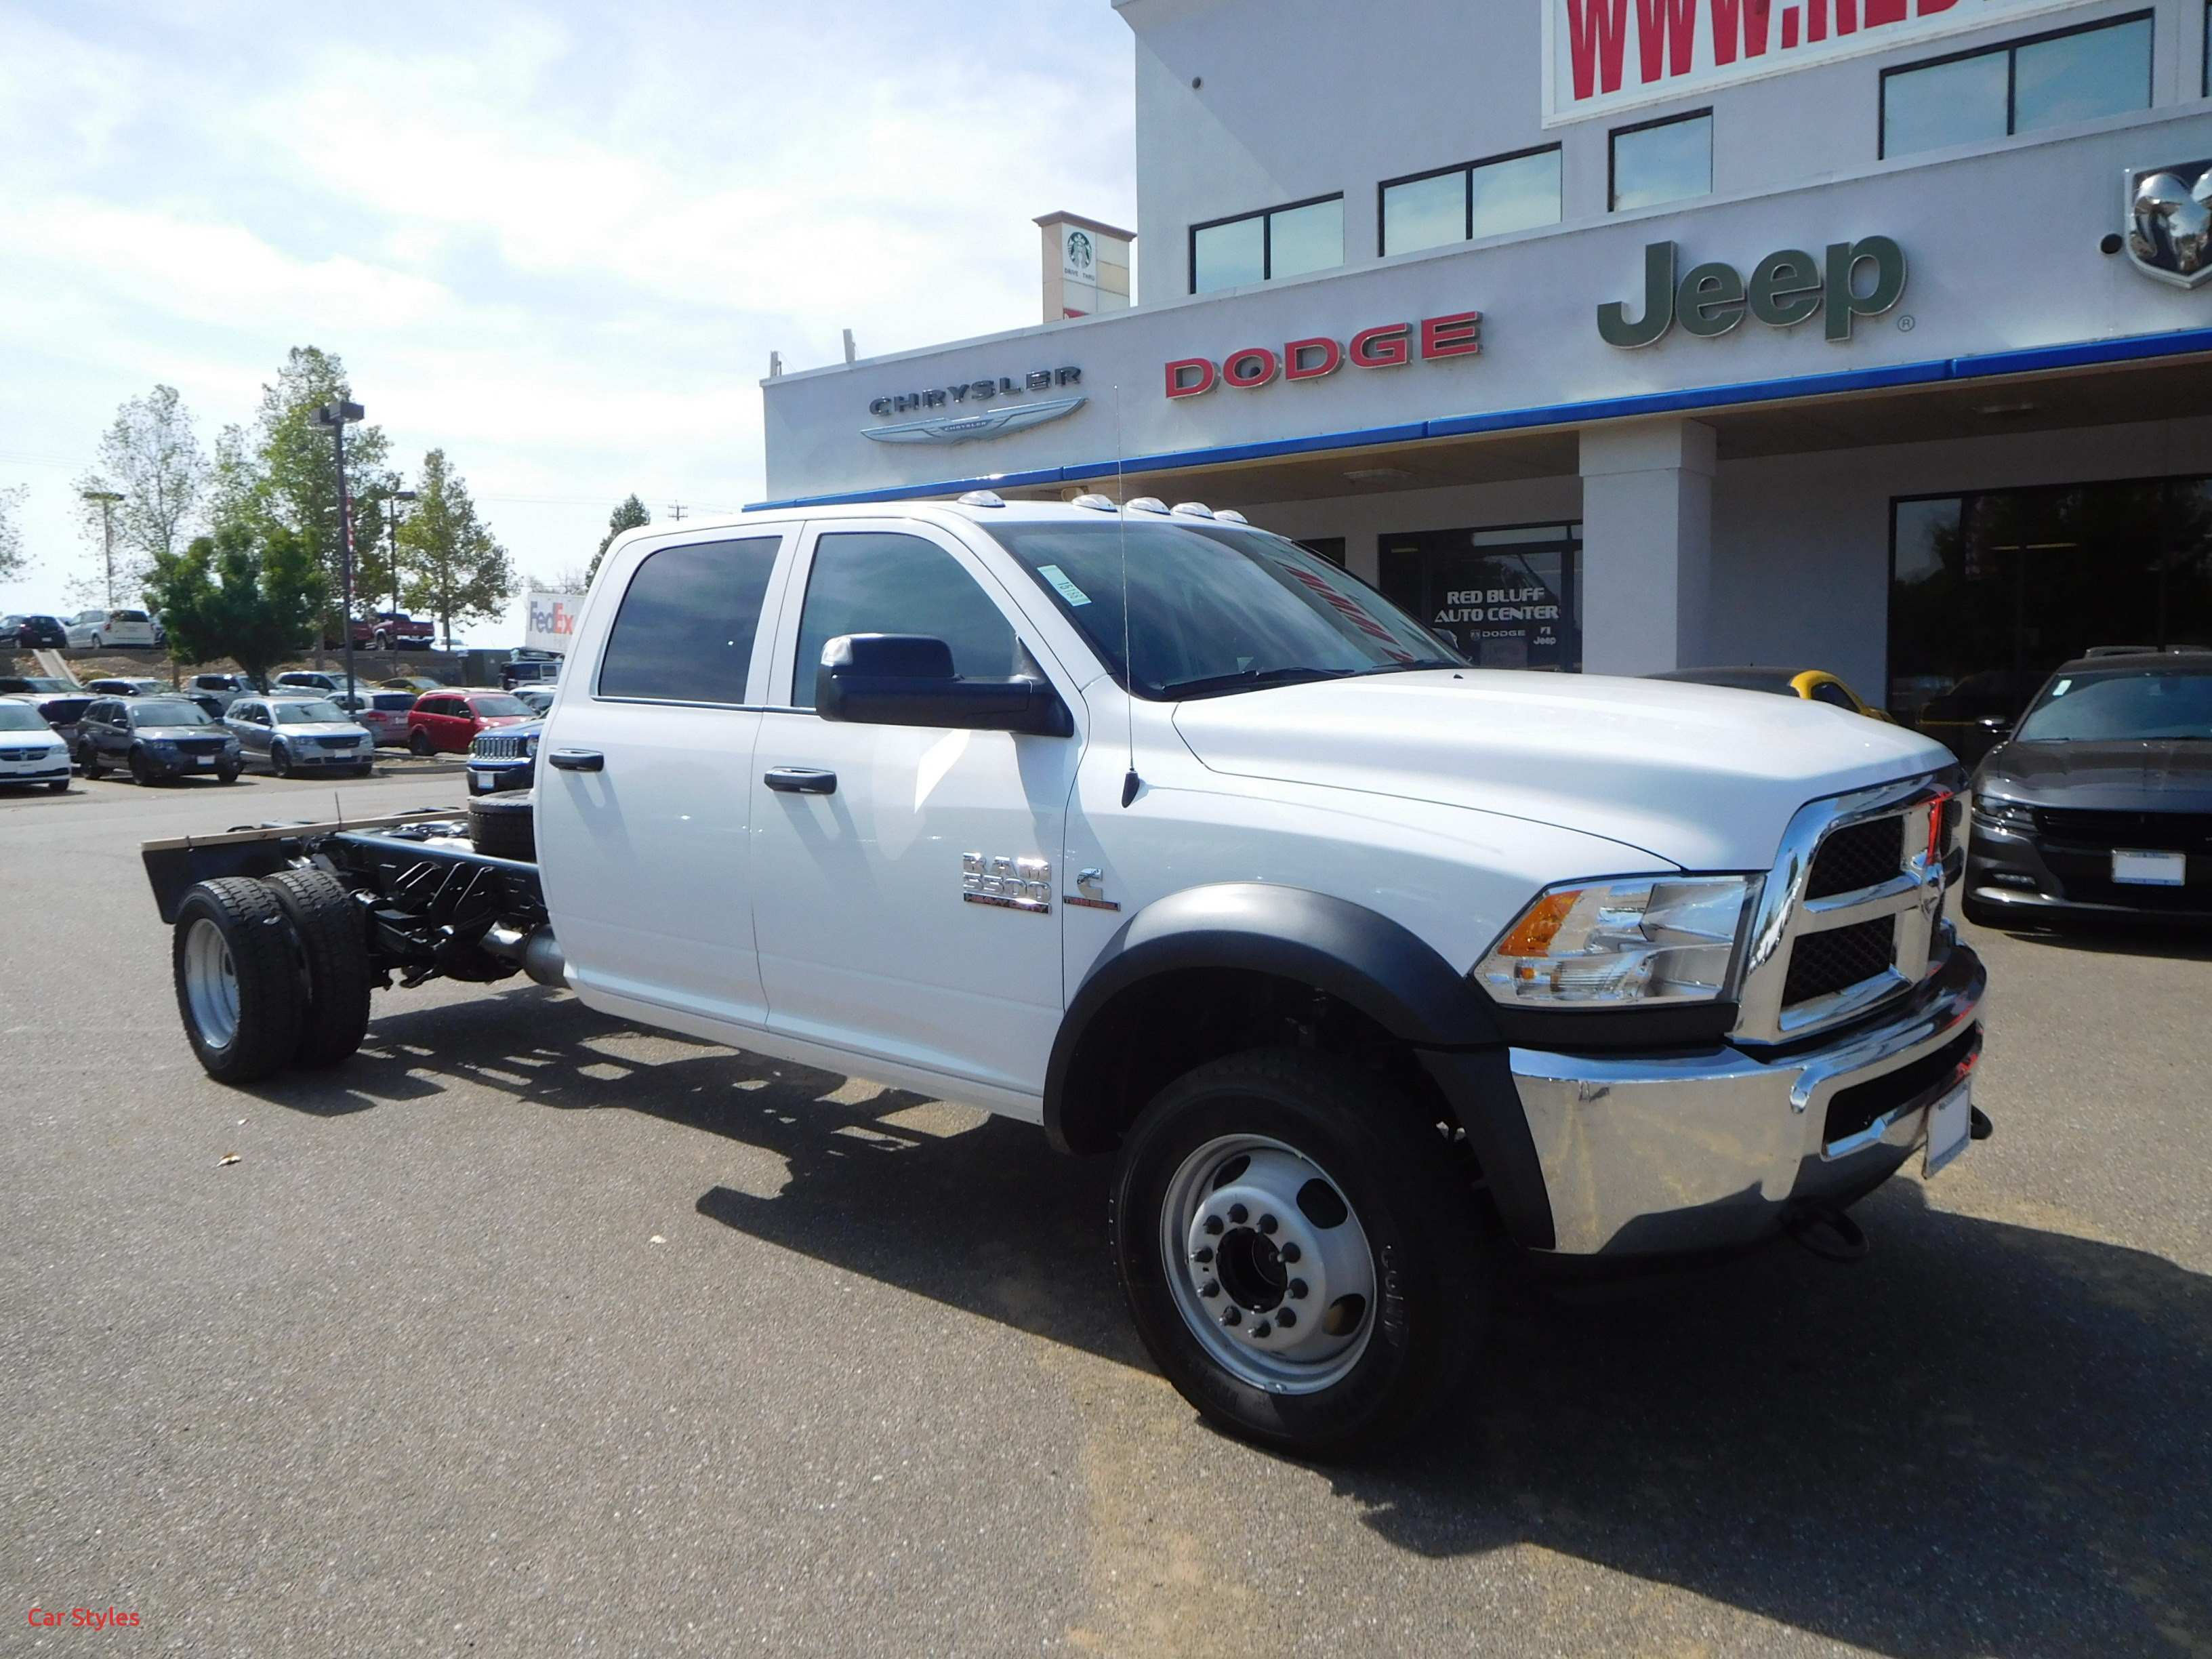 77 New 2019 Dodge 5500 For Sale Release Date for 2019 Dodge 5500 For Sale